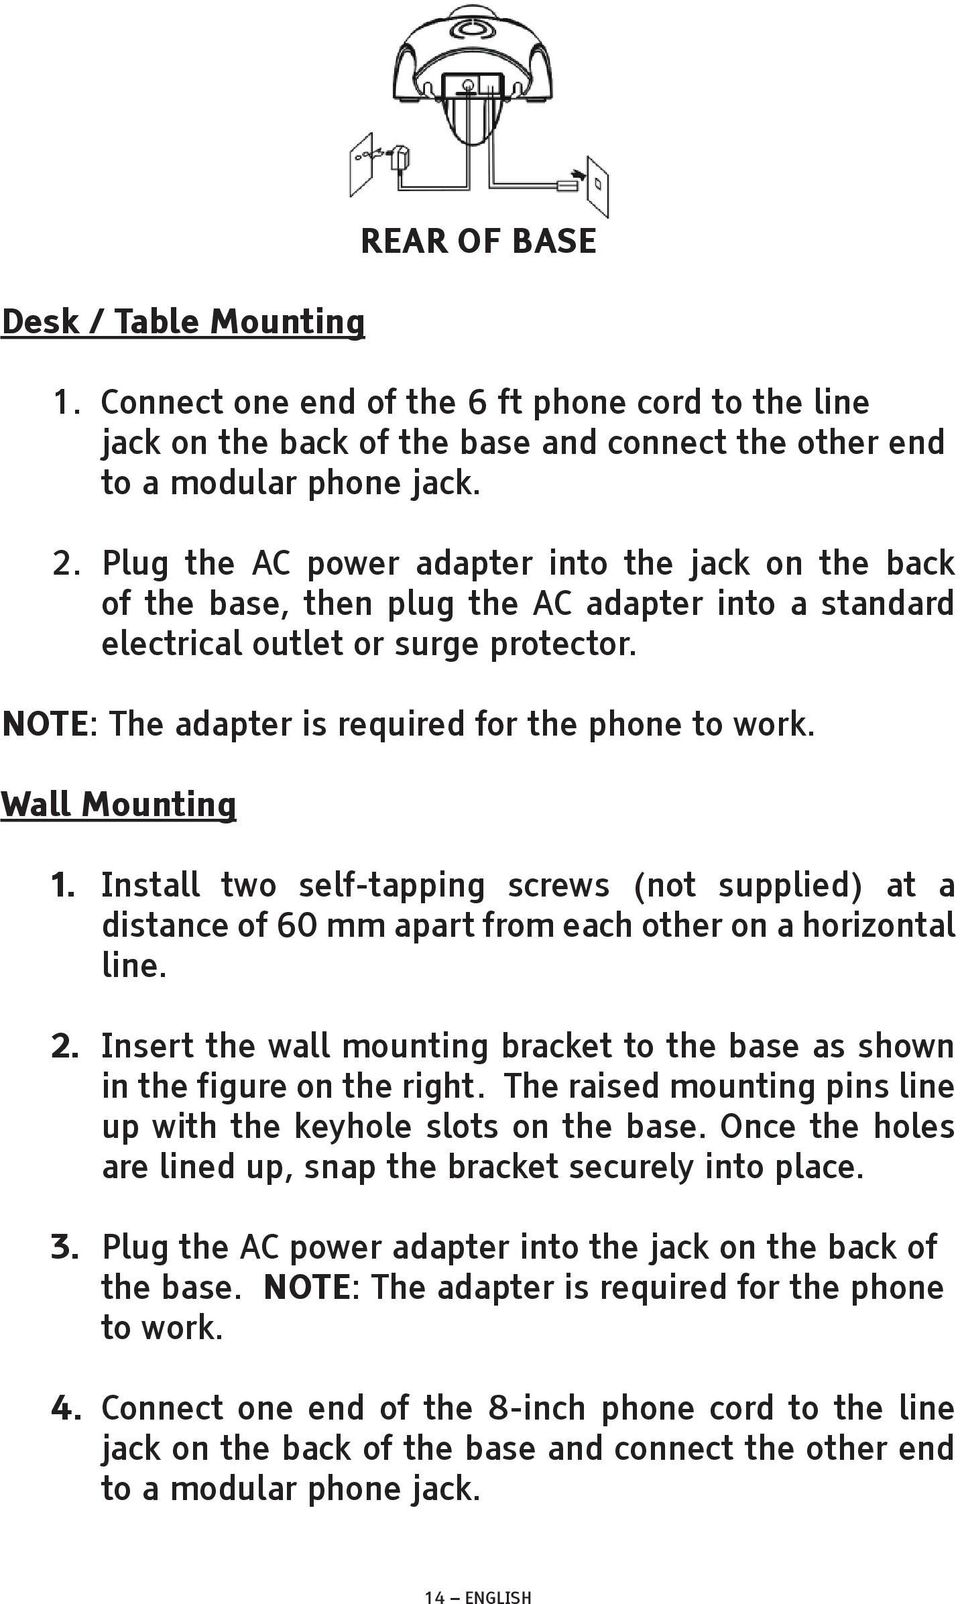 Wall Mounting 1. Install two self-tapping screws (not supplied) at a distance of 60 mm apart from each other on a horizontal line. 2.